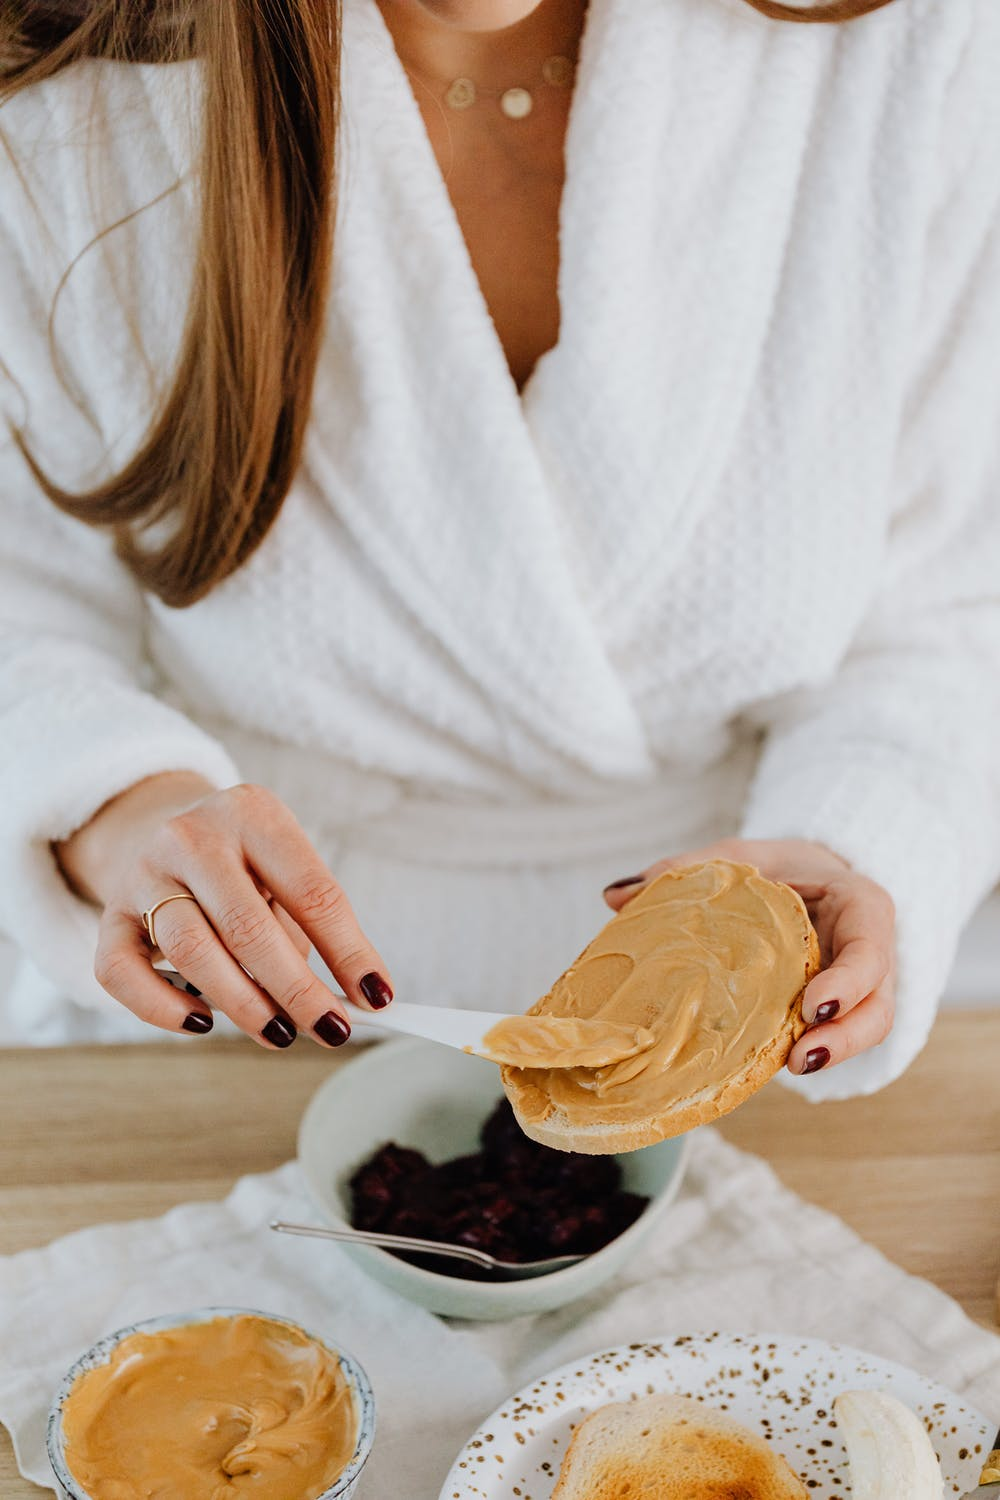 Bess made Joey peanut butter and salami sandwiches | Source: Pexels